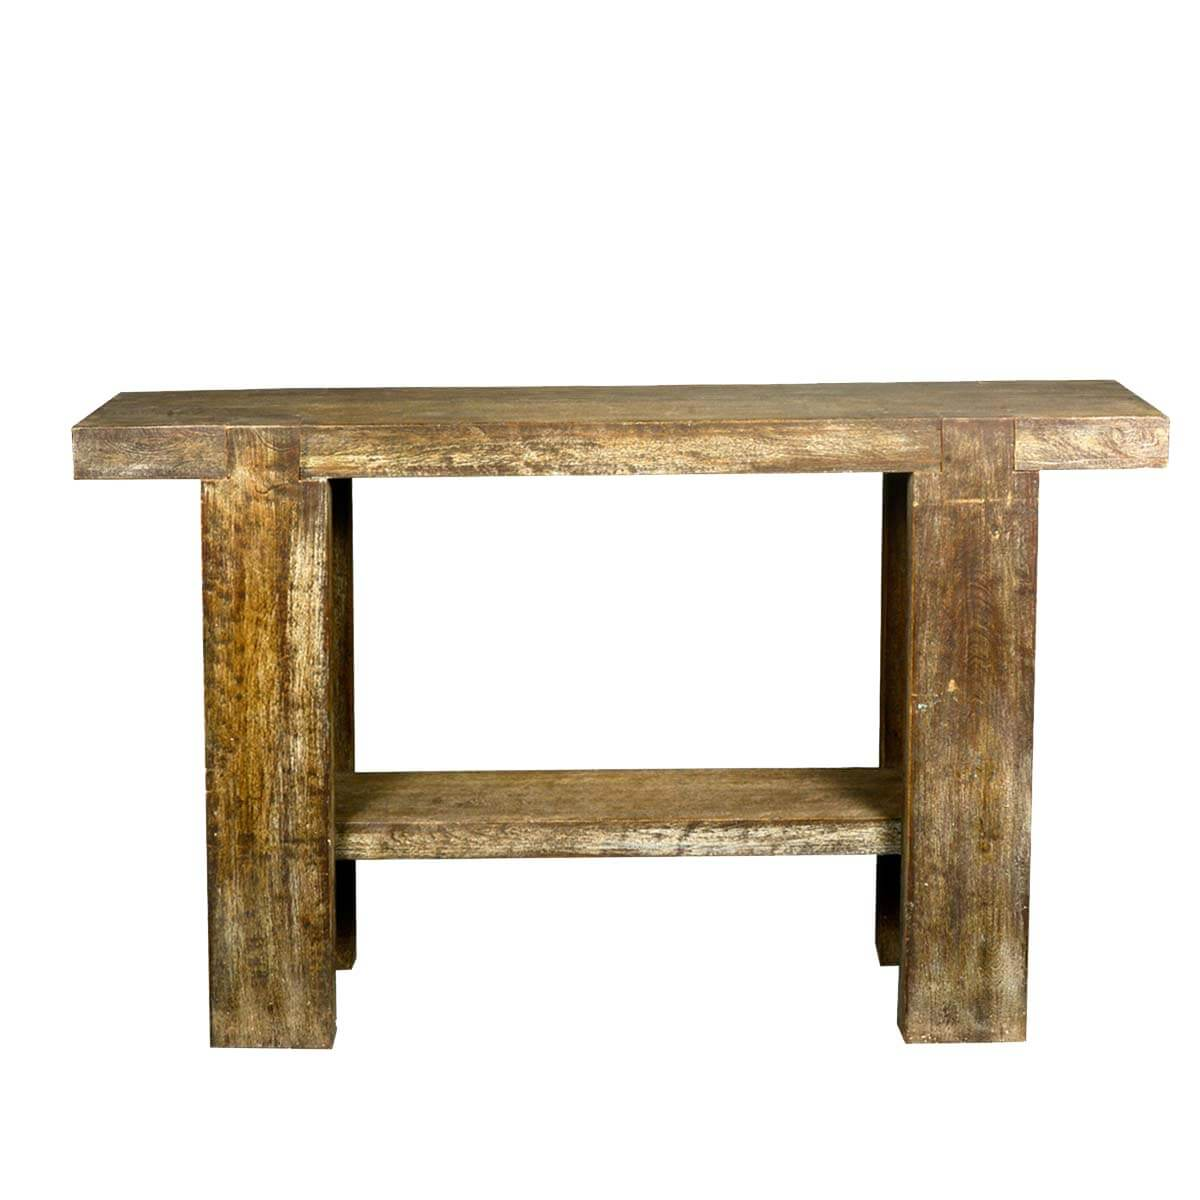 Rustic holes reclaimed wood sofa table hall console